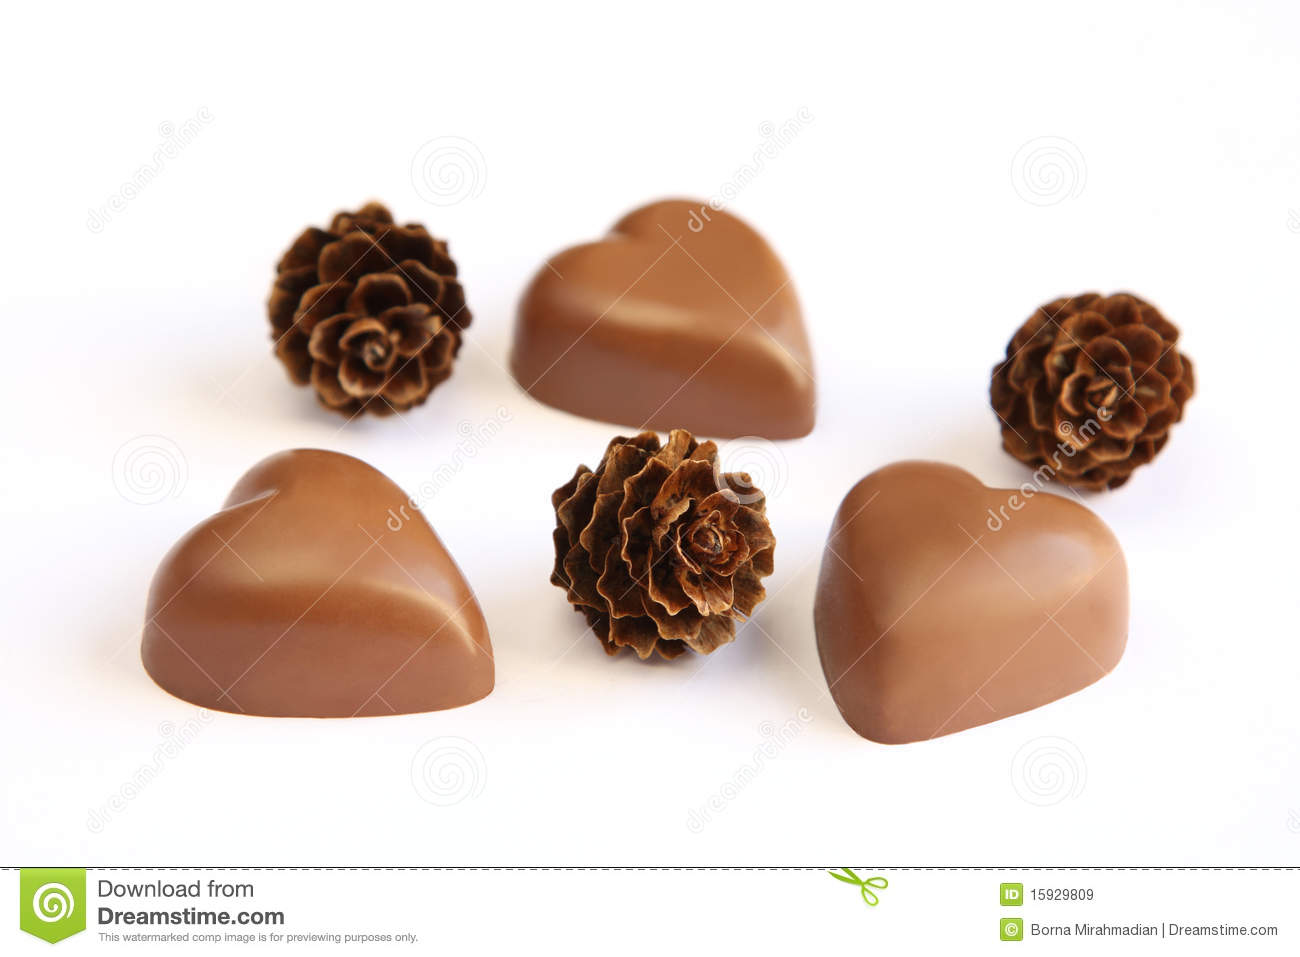 Heart shaped chocolates and pine cones